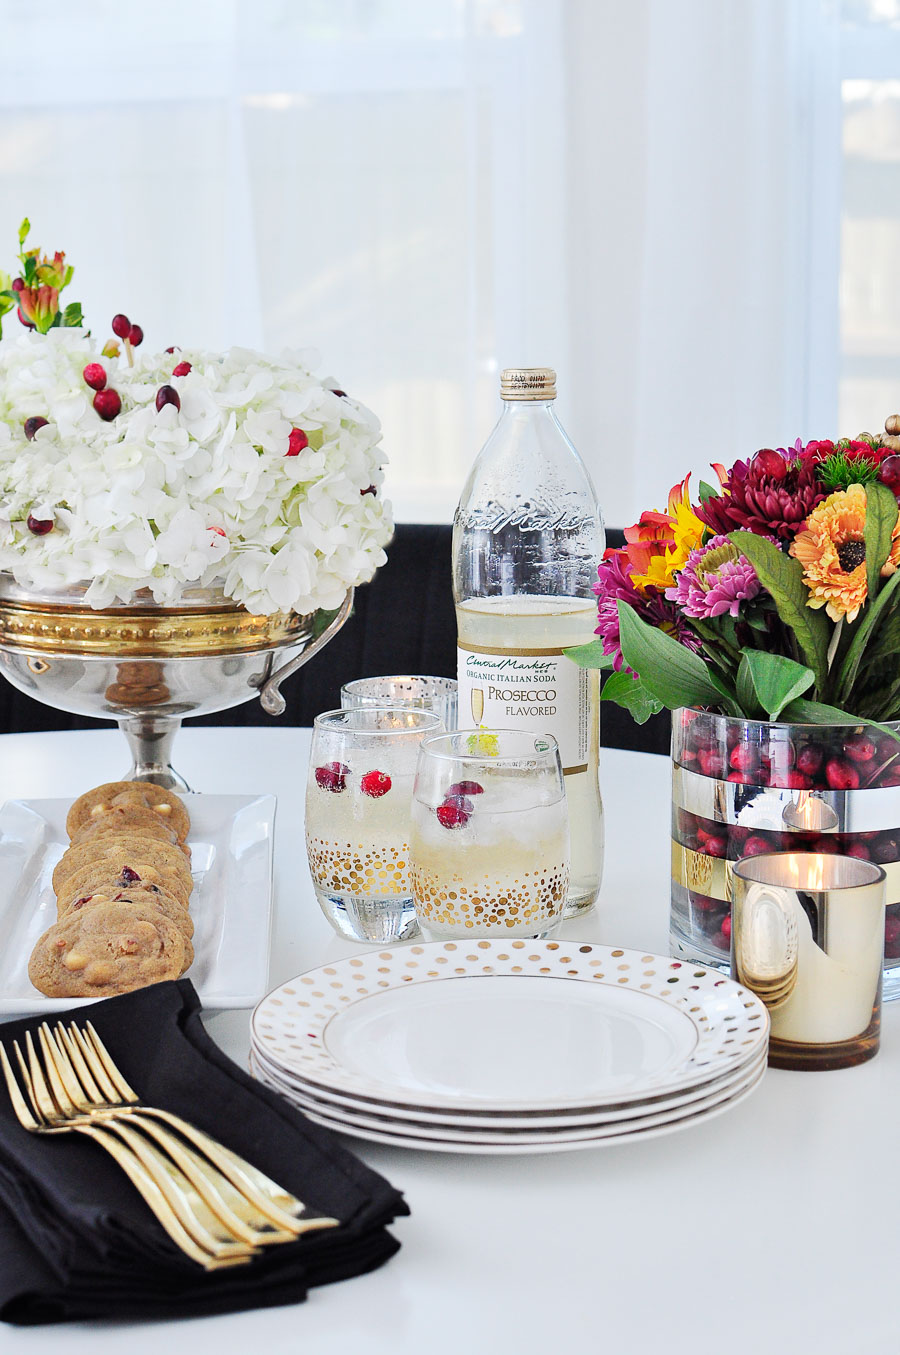 Non-alcoholic prosecco Italian soda paired with other tasty Thanksgiving treats.